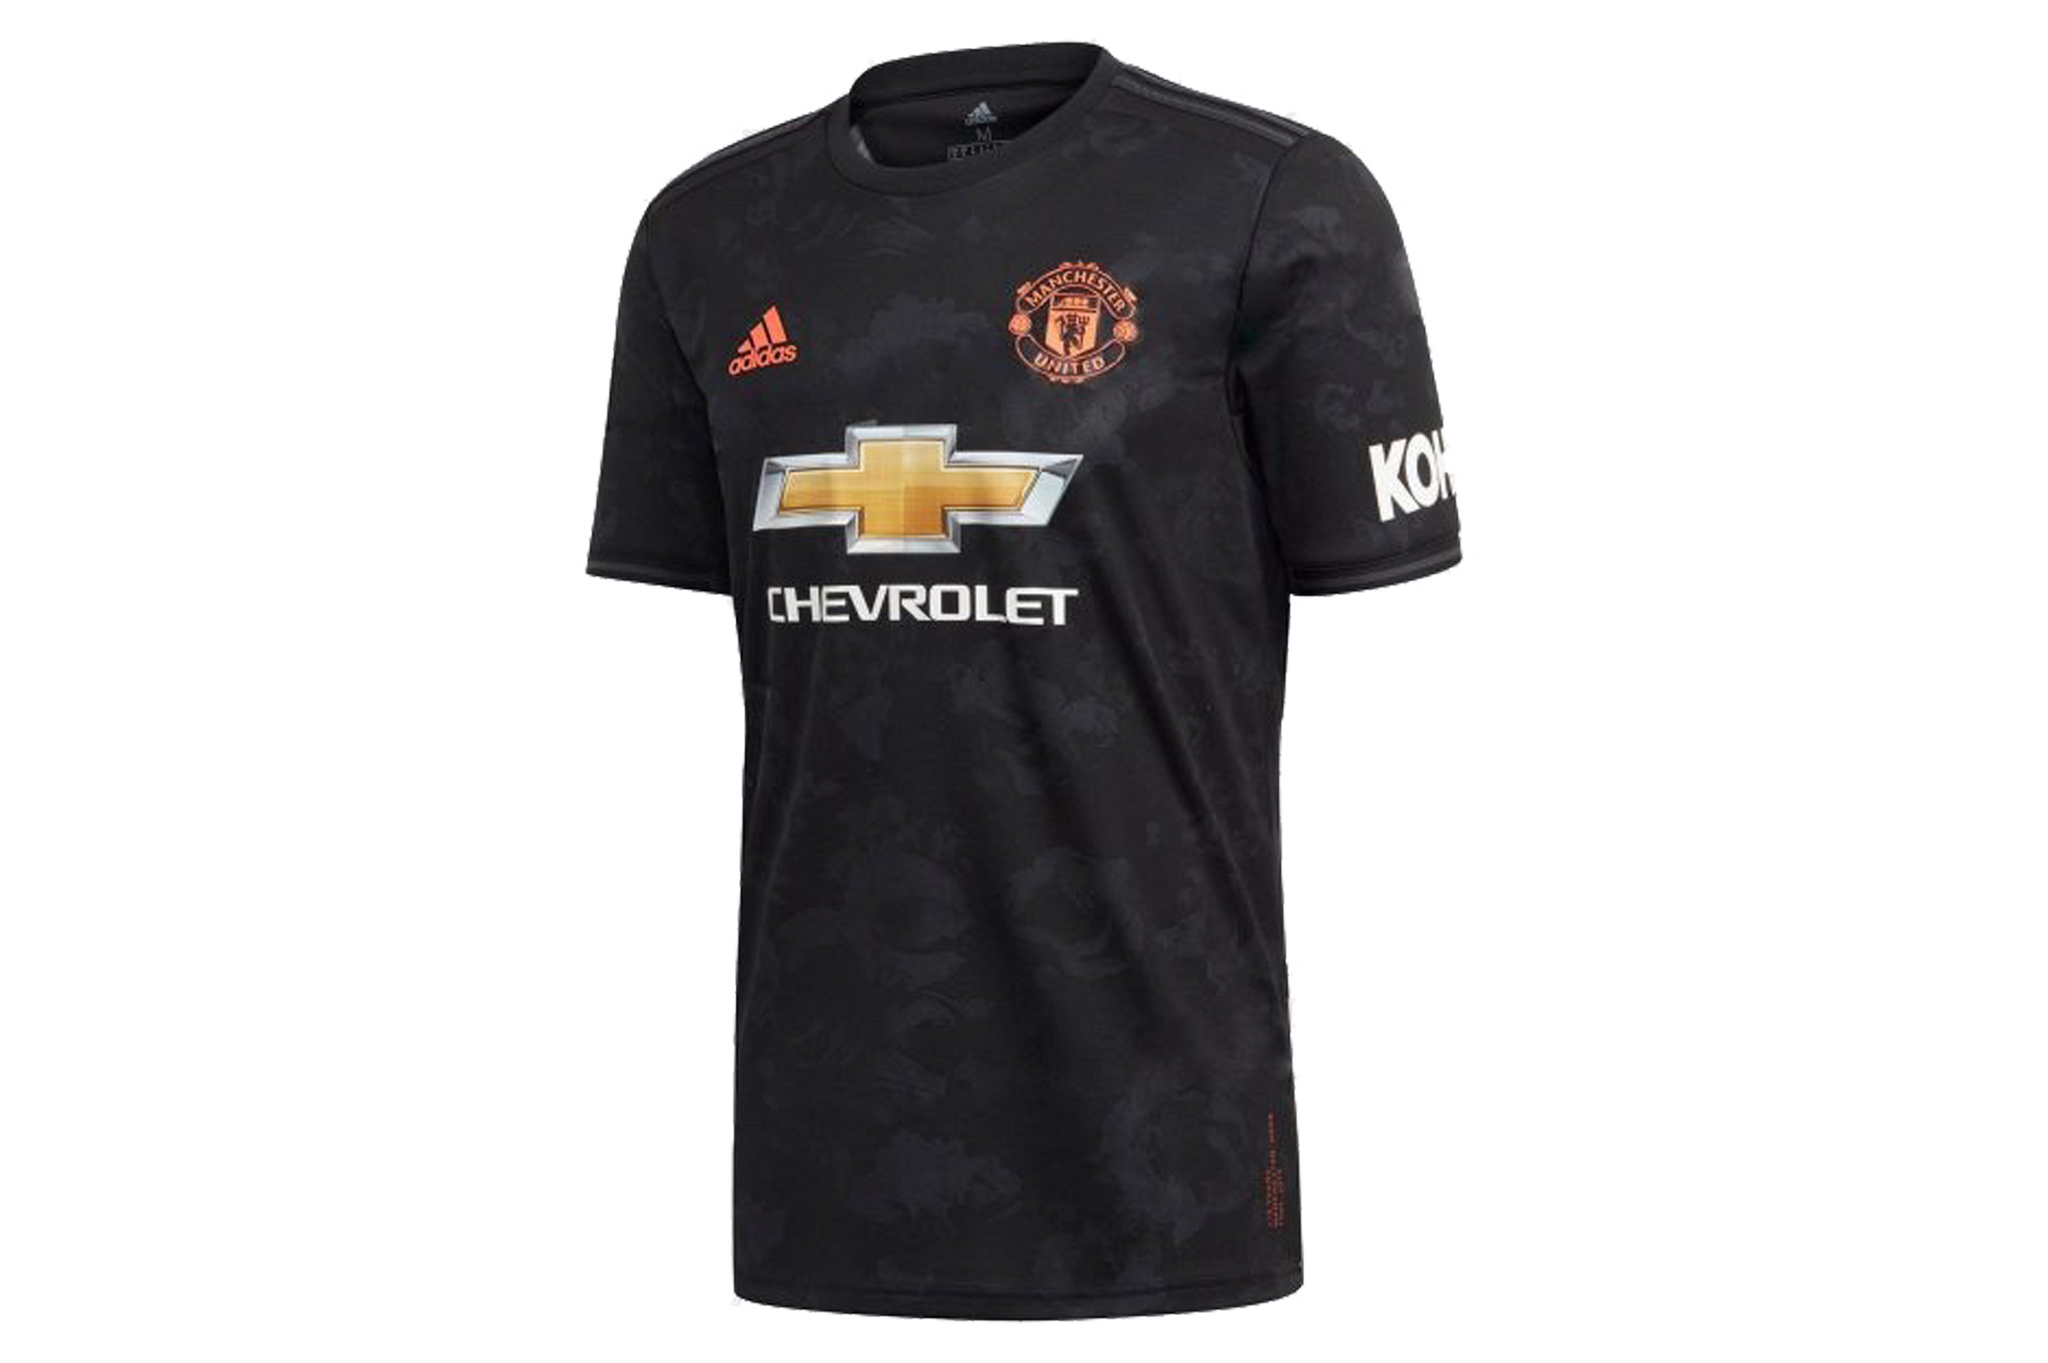 wholesale dealer d0ca0 c1c71 Manchester United Third Jersey 2019/20 | My Football Store